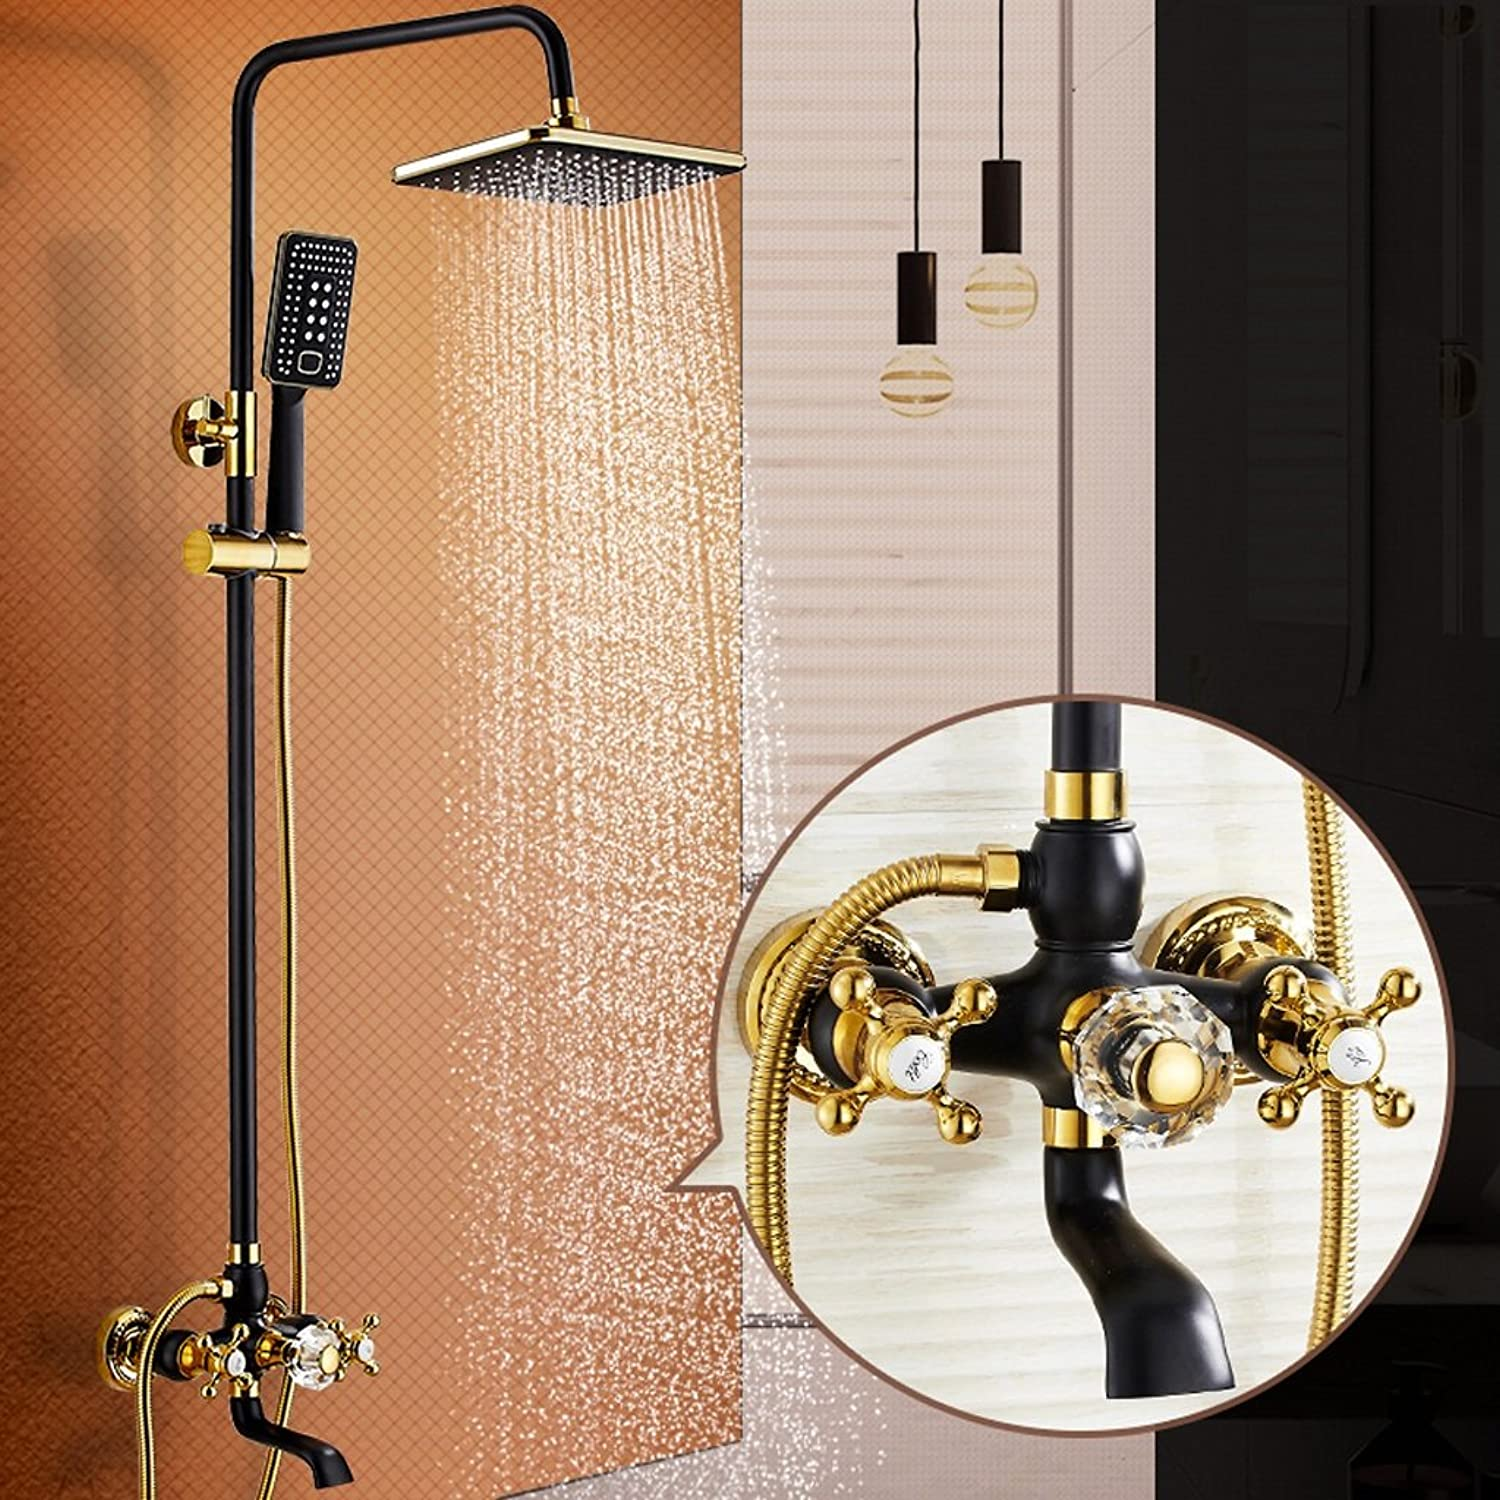 Square Thermostatic Shower Set, Black Shower Head, European Hand Shower (Copper)